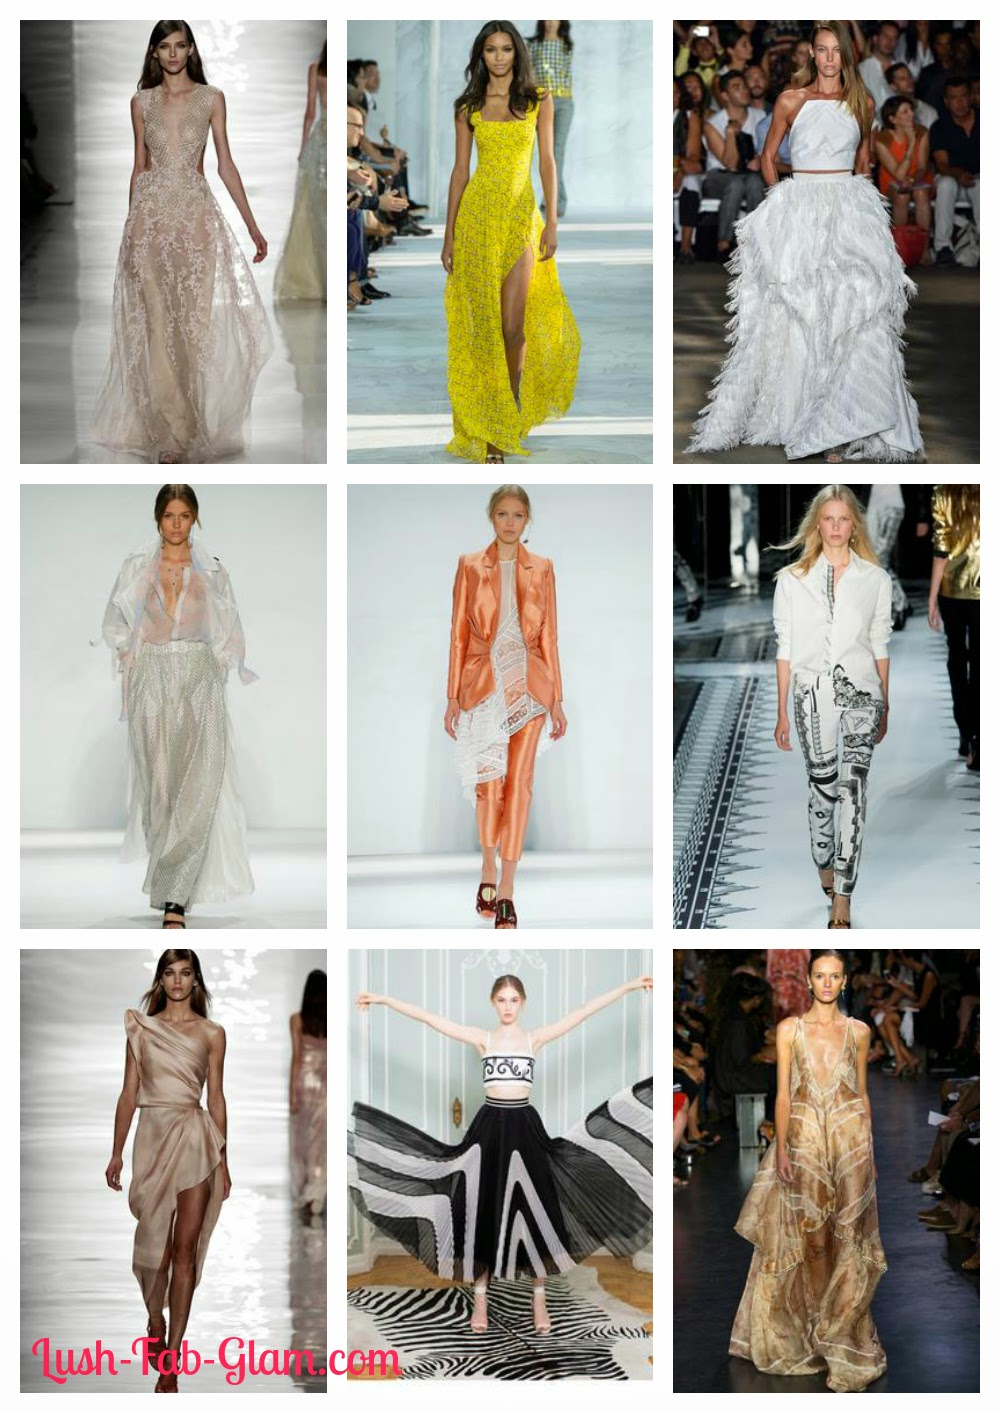 http://www.lush-fab-glam.com/2014/09/ny-fashion-week-spring-2015-collections.html